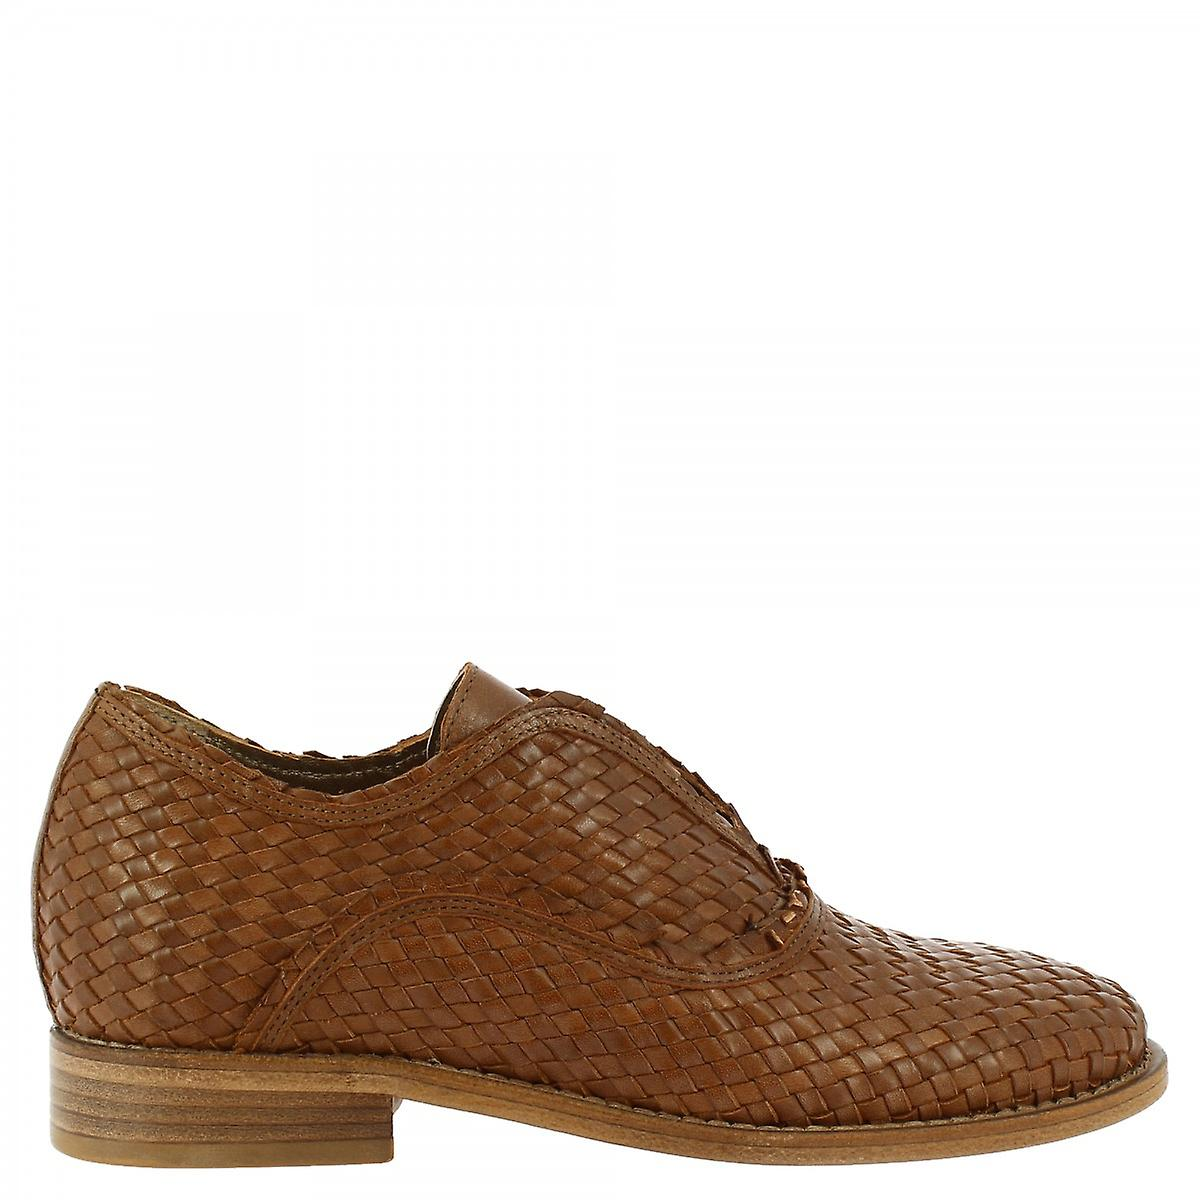 Leonardo Shoes Women's handmade slip on loafers shoes in brown woven leather